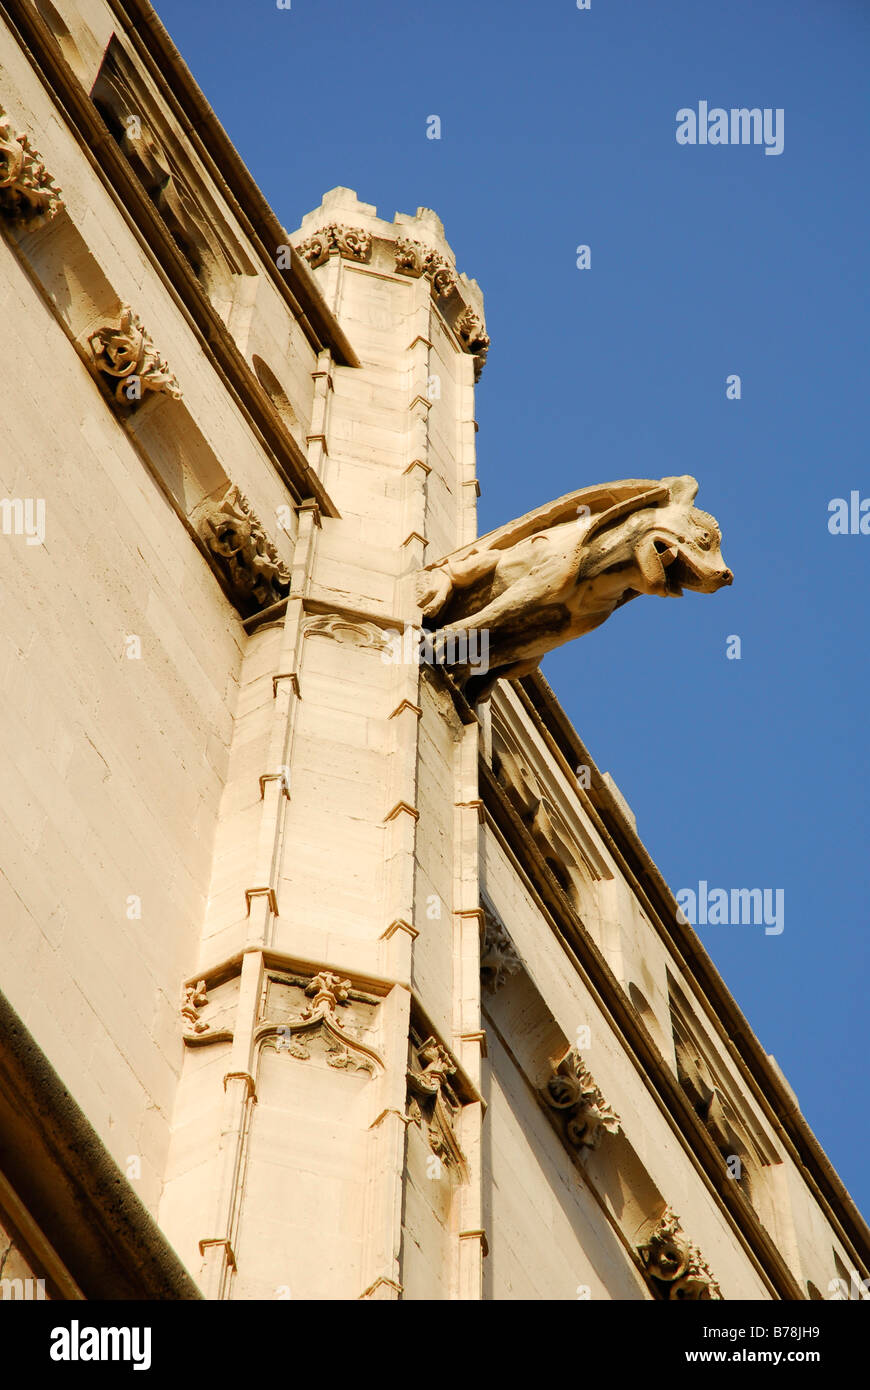 Facade detail in the Catalonian Gothic style, former maritime trade stock exchange, used today for art and cultural - Stock Image